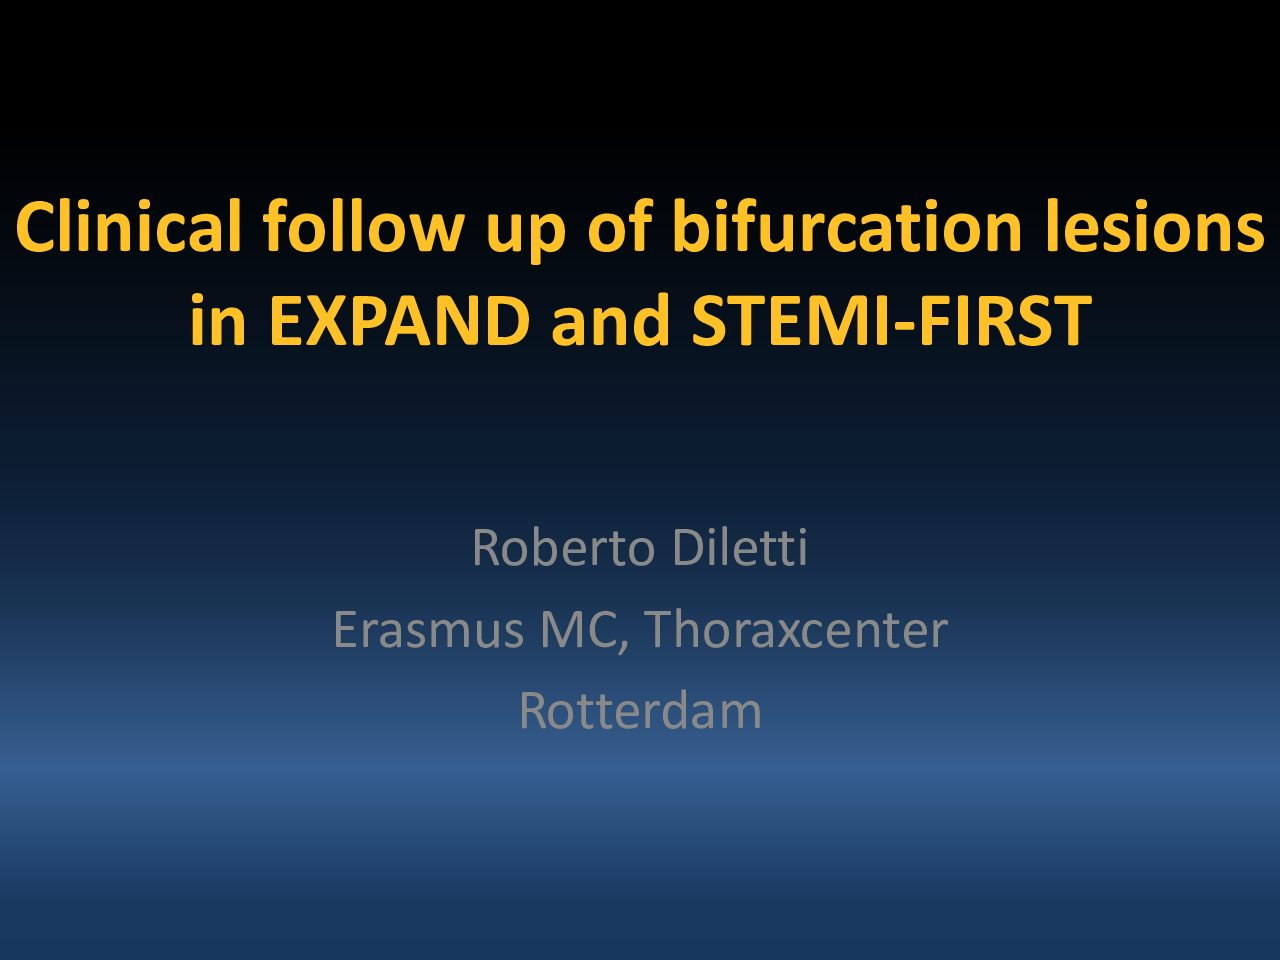 Clinical follow up of bifurcation lesions in EXPAND and STEMI-FIRST